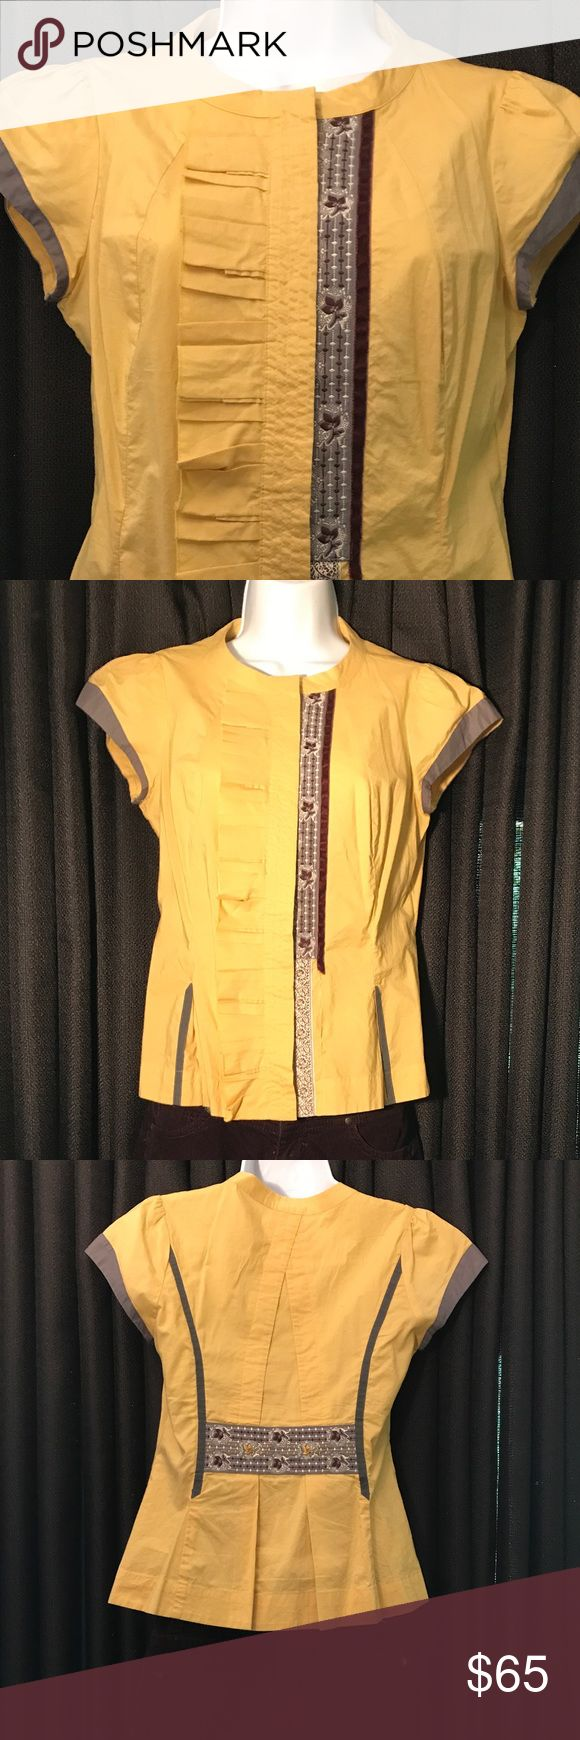 Unique Asian fusion inspired blouse Anthropology/Floreat cap sleeved button down blouse with beautiful detail. 100% Cotton in a lovely yellow ochre with silk and velvet details, carved buttons. Great attention to detail on this piece, front and back. Paired with a pencil grey skirt for a smart biz look as easily with your favorite jeans. floreat Tops Button Down Shirts